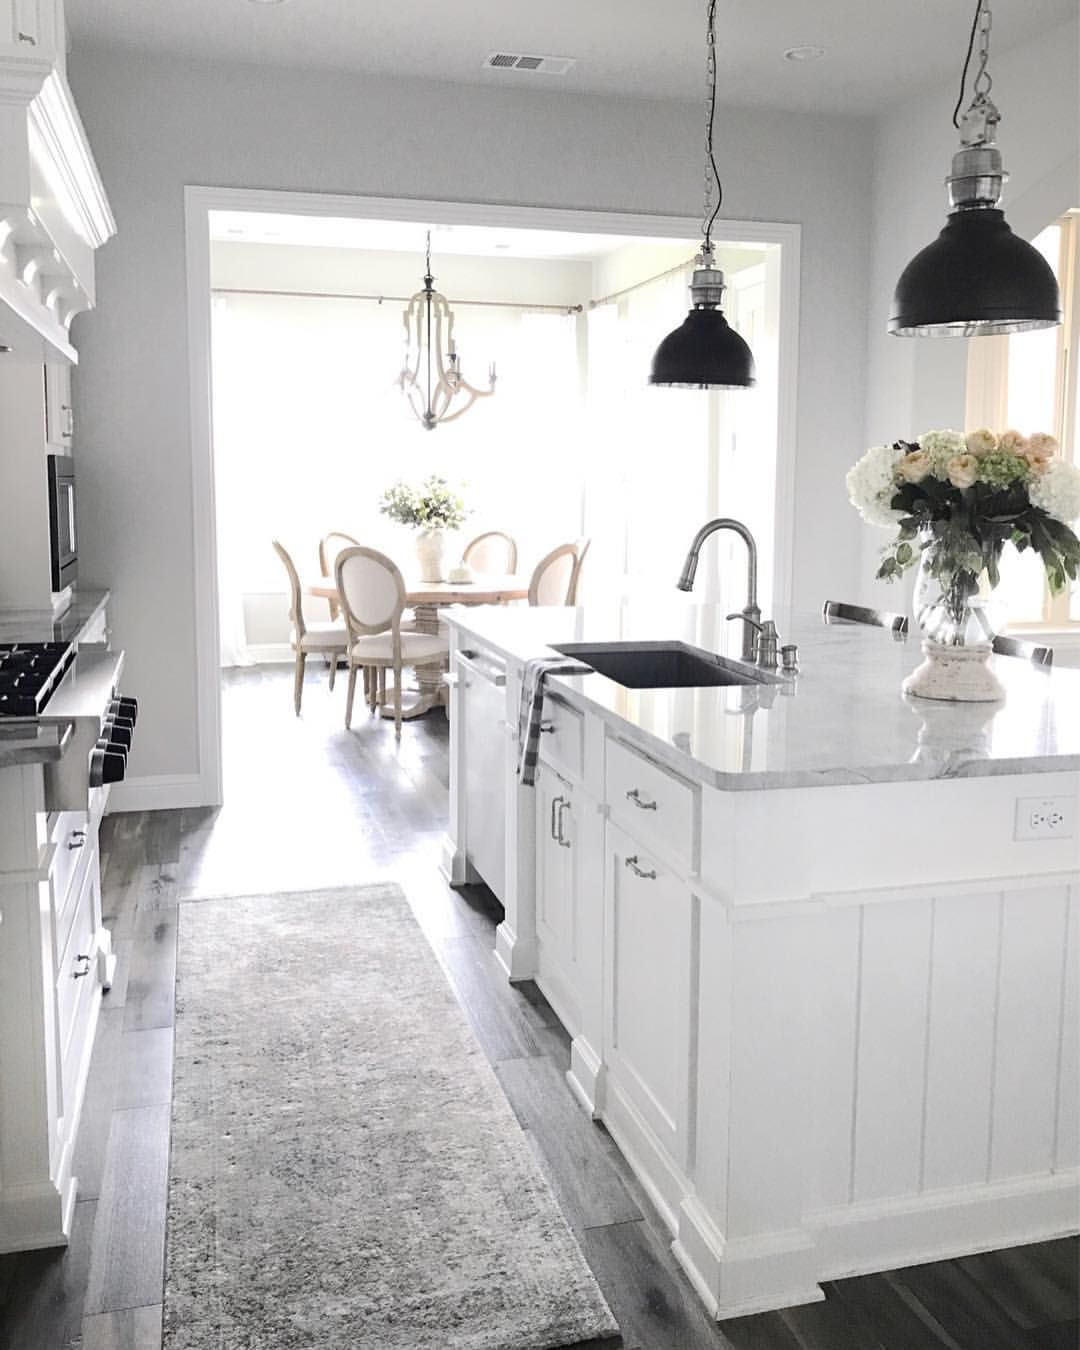 Pin by Claire Stripp on Decor   Pinterest   Kitchens, House and ...